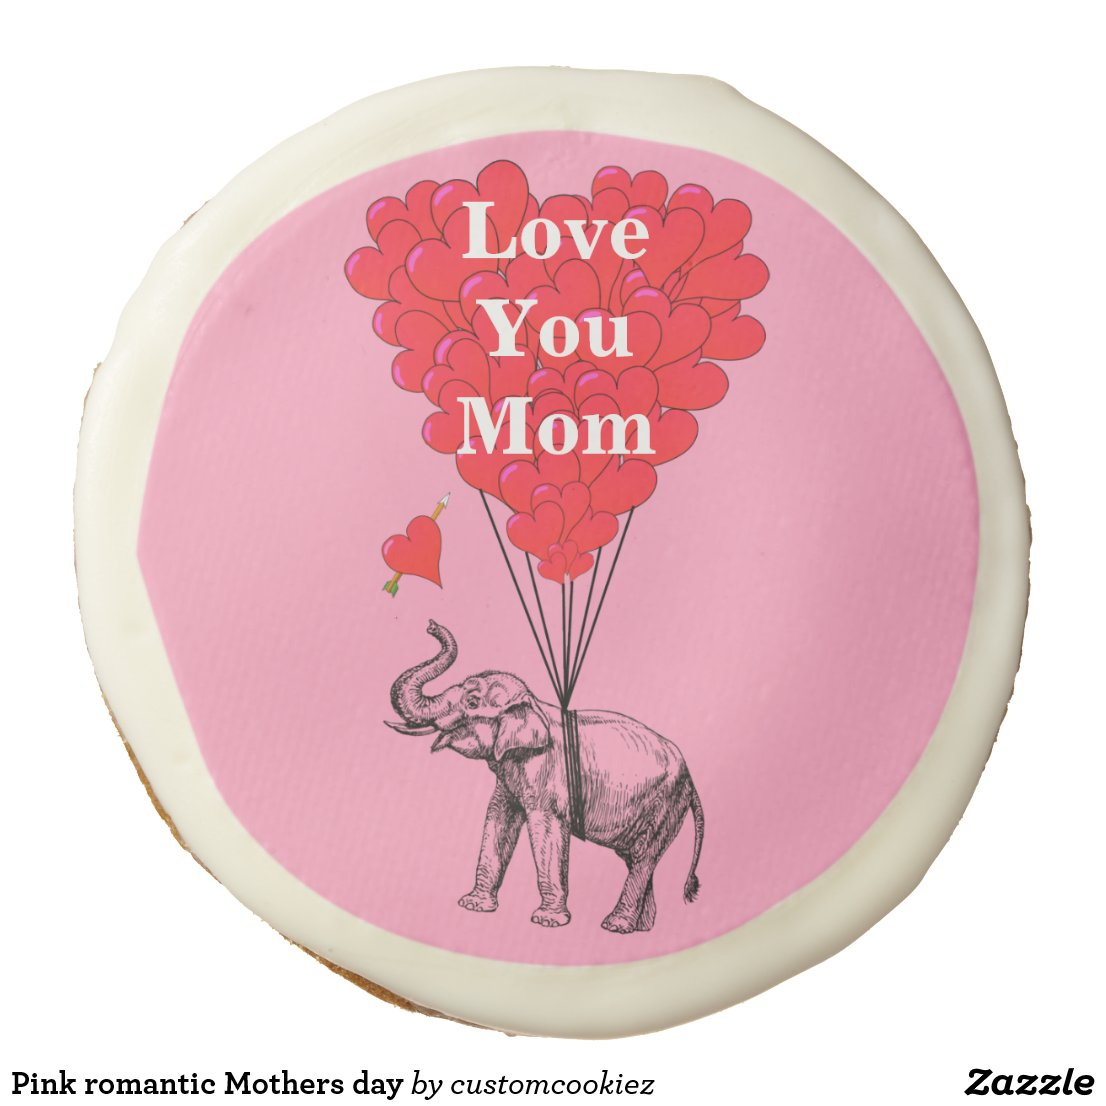 Pink romantic Mothers day Sugar Cookie